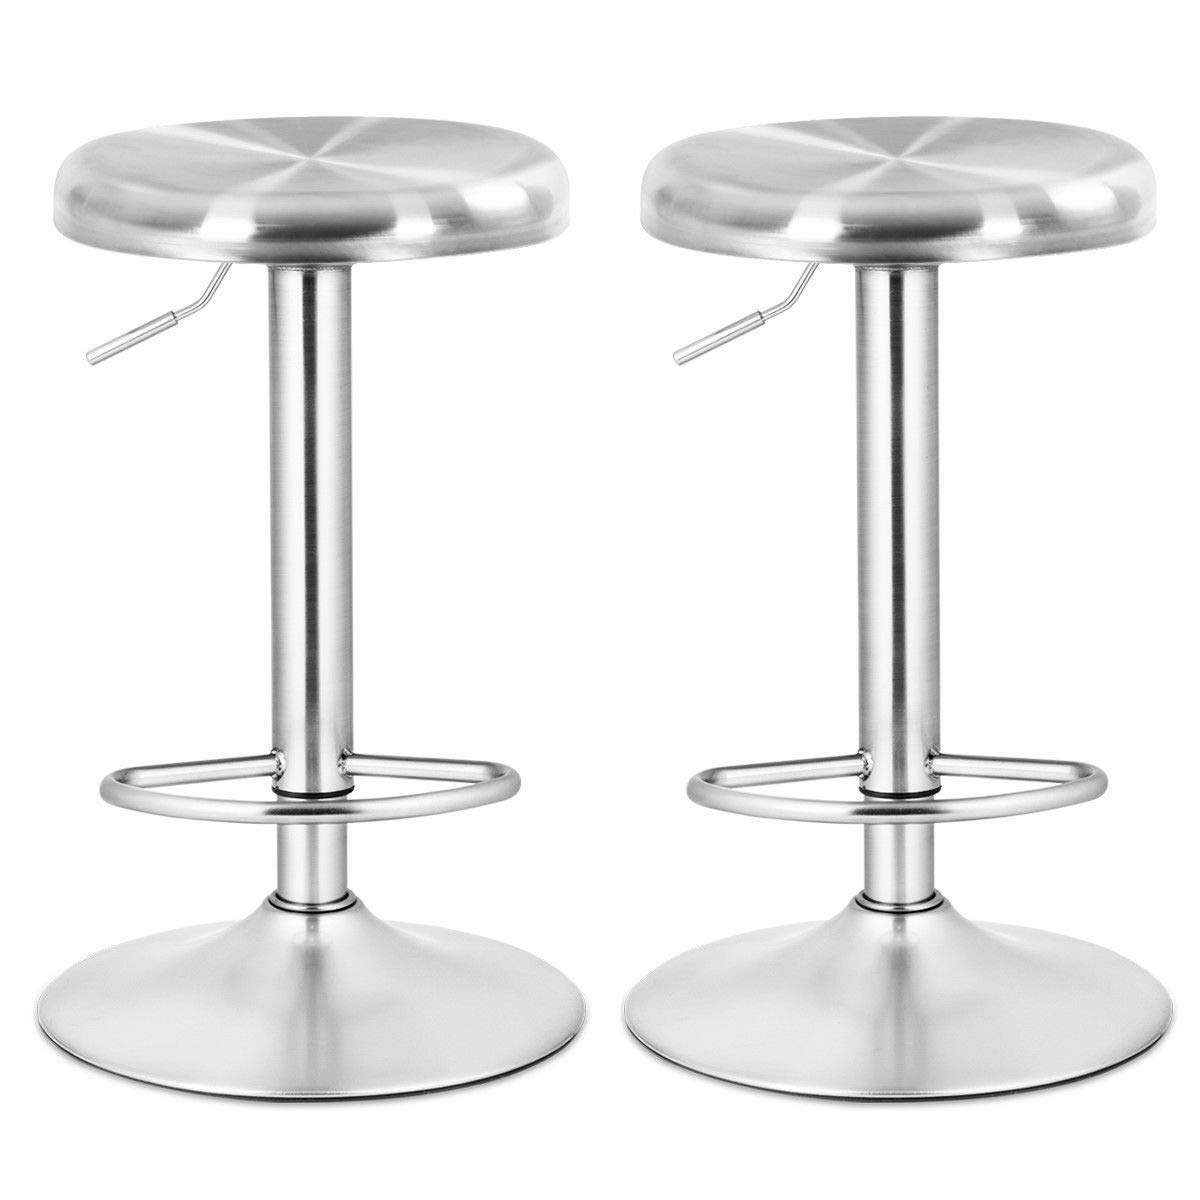 COSTWAY Bar Stool, Modern Swivel Adjustable Height Barstool, Stainless Steel Round Top Barstools with Footrest, for Pub Bistro Kitchen Dining Set of 2